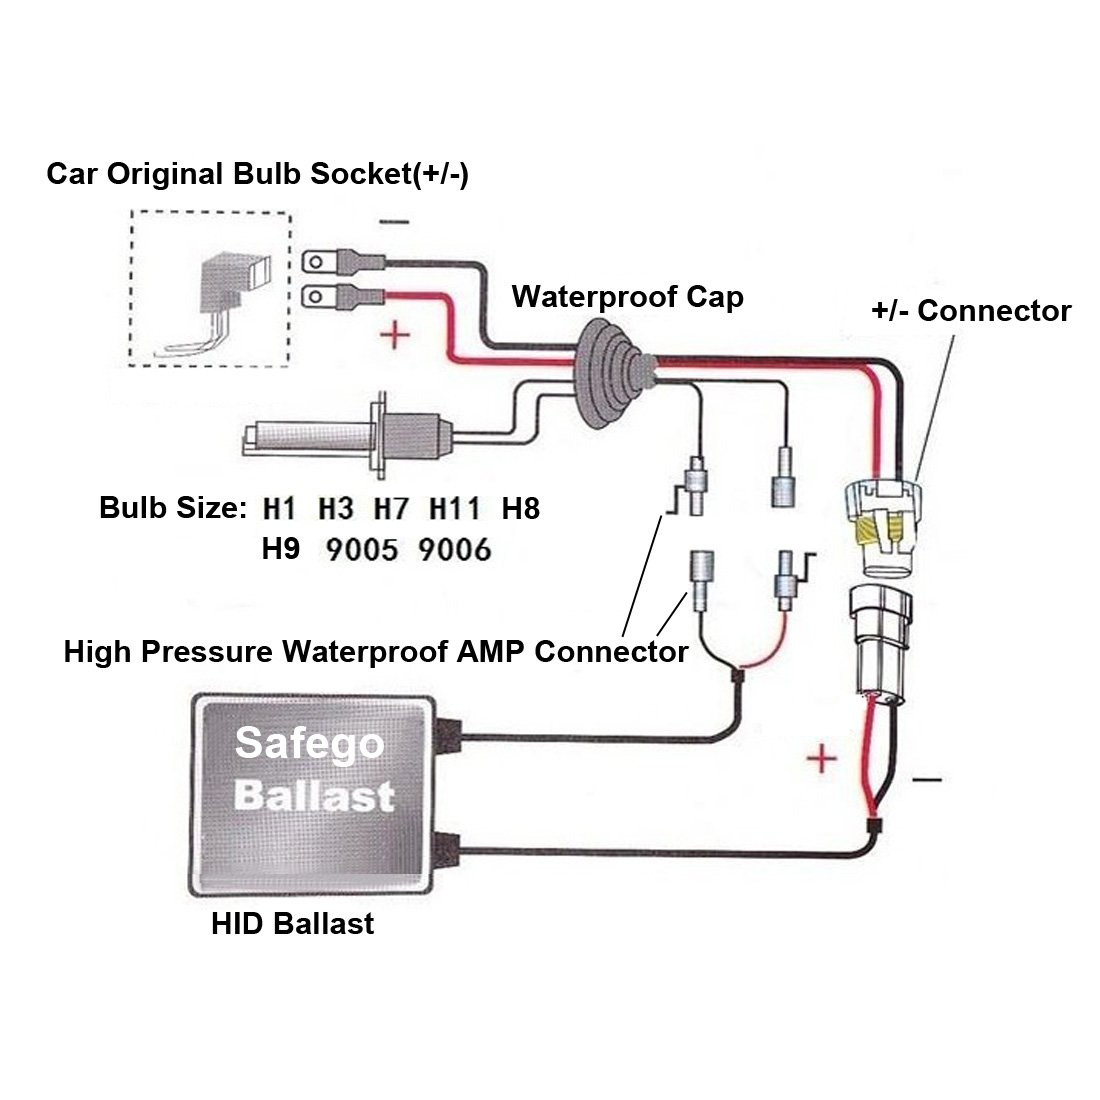 Wiring Diagram For H4 Led Bulb | Wiring Diagram on bulb wiring pattern, bulb socket diagram, bulb fuse, bulb parts diagram,